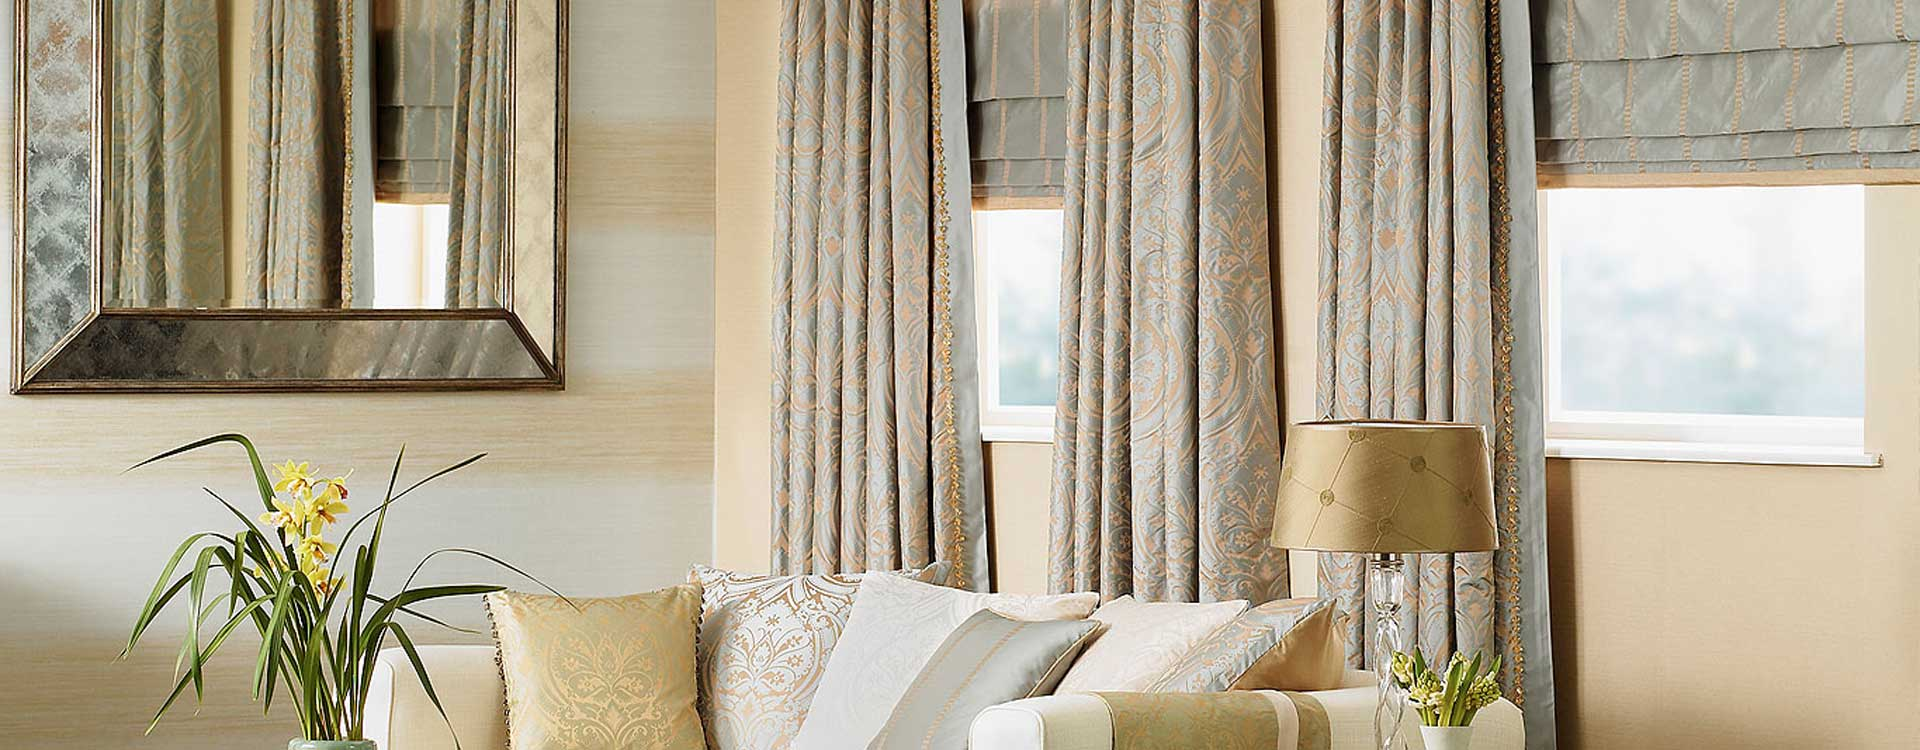 Custom Silk Curtains, Drapes and Roman Shades.